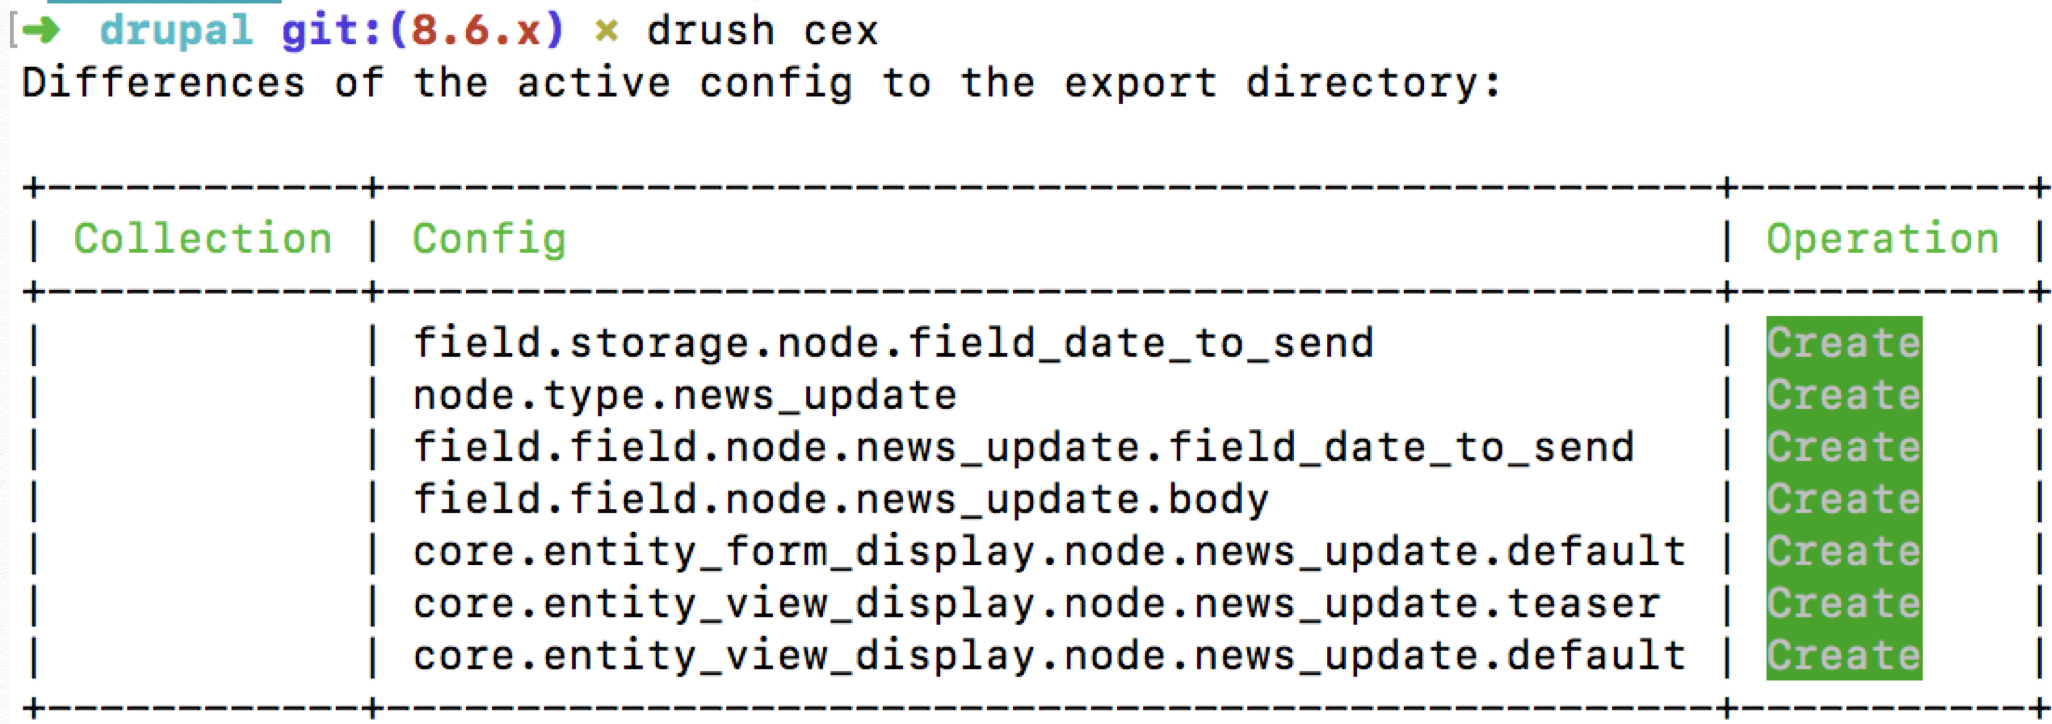 example configuration export